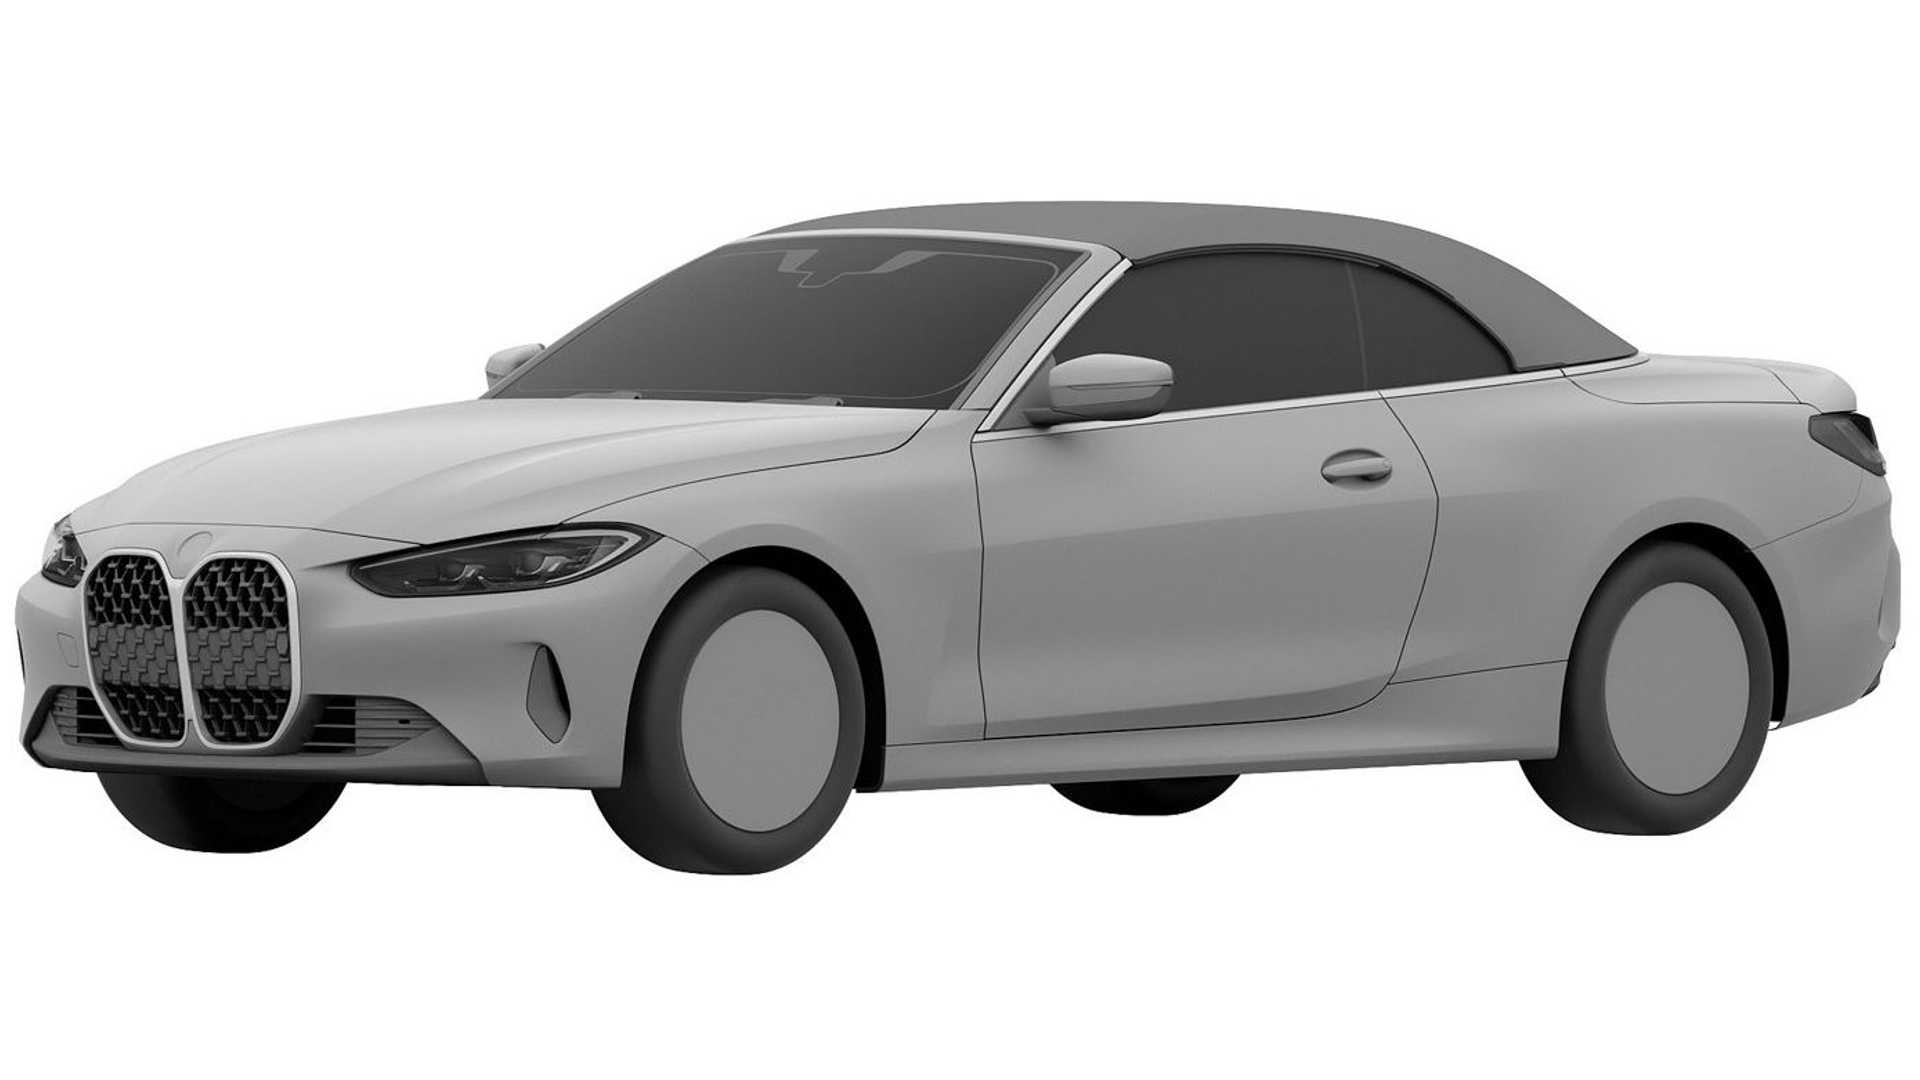 2021 Bmw 4 Series Convertible Patent Images Surface Performancedrive